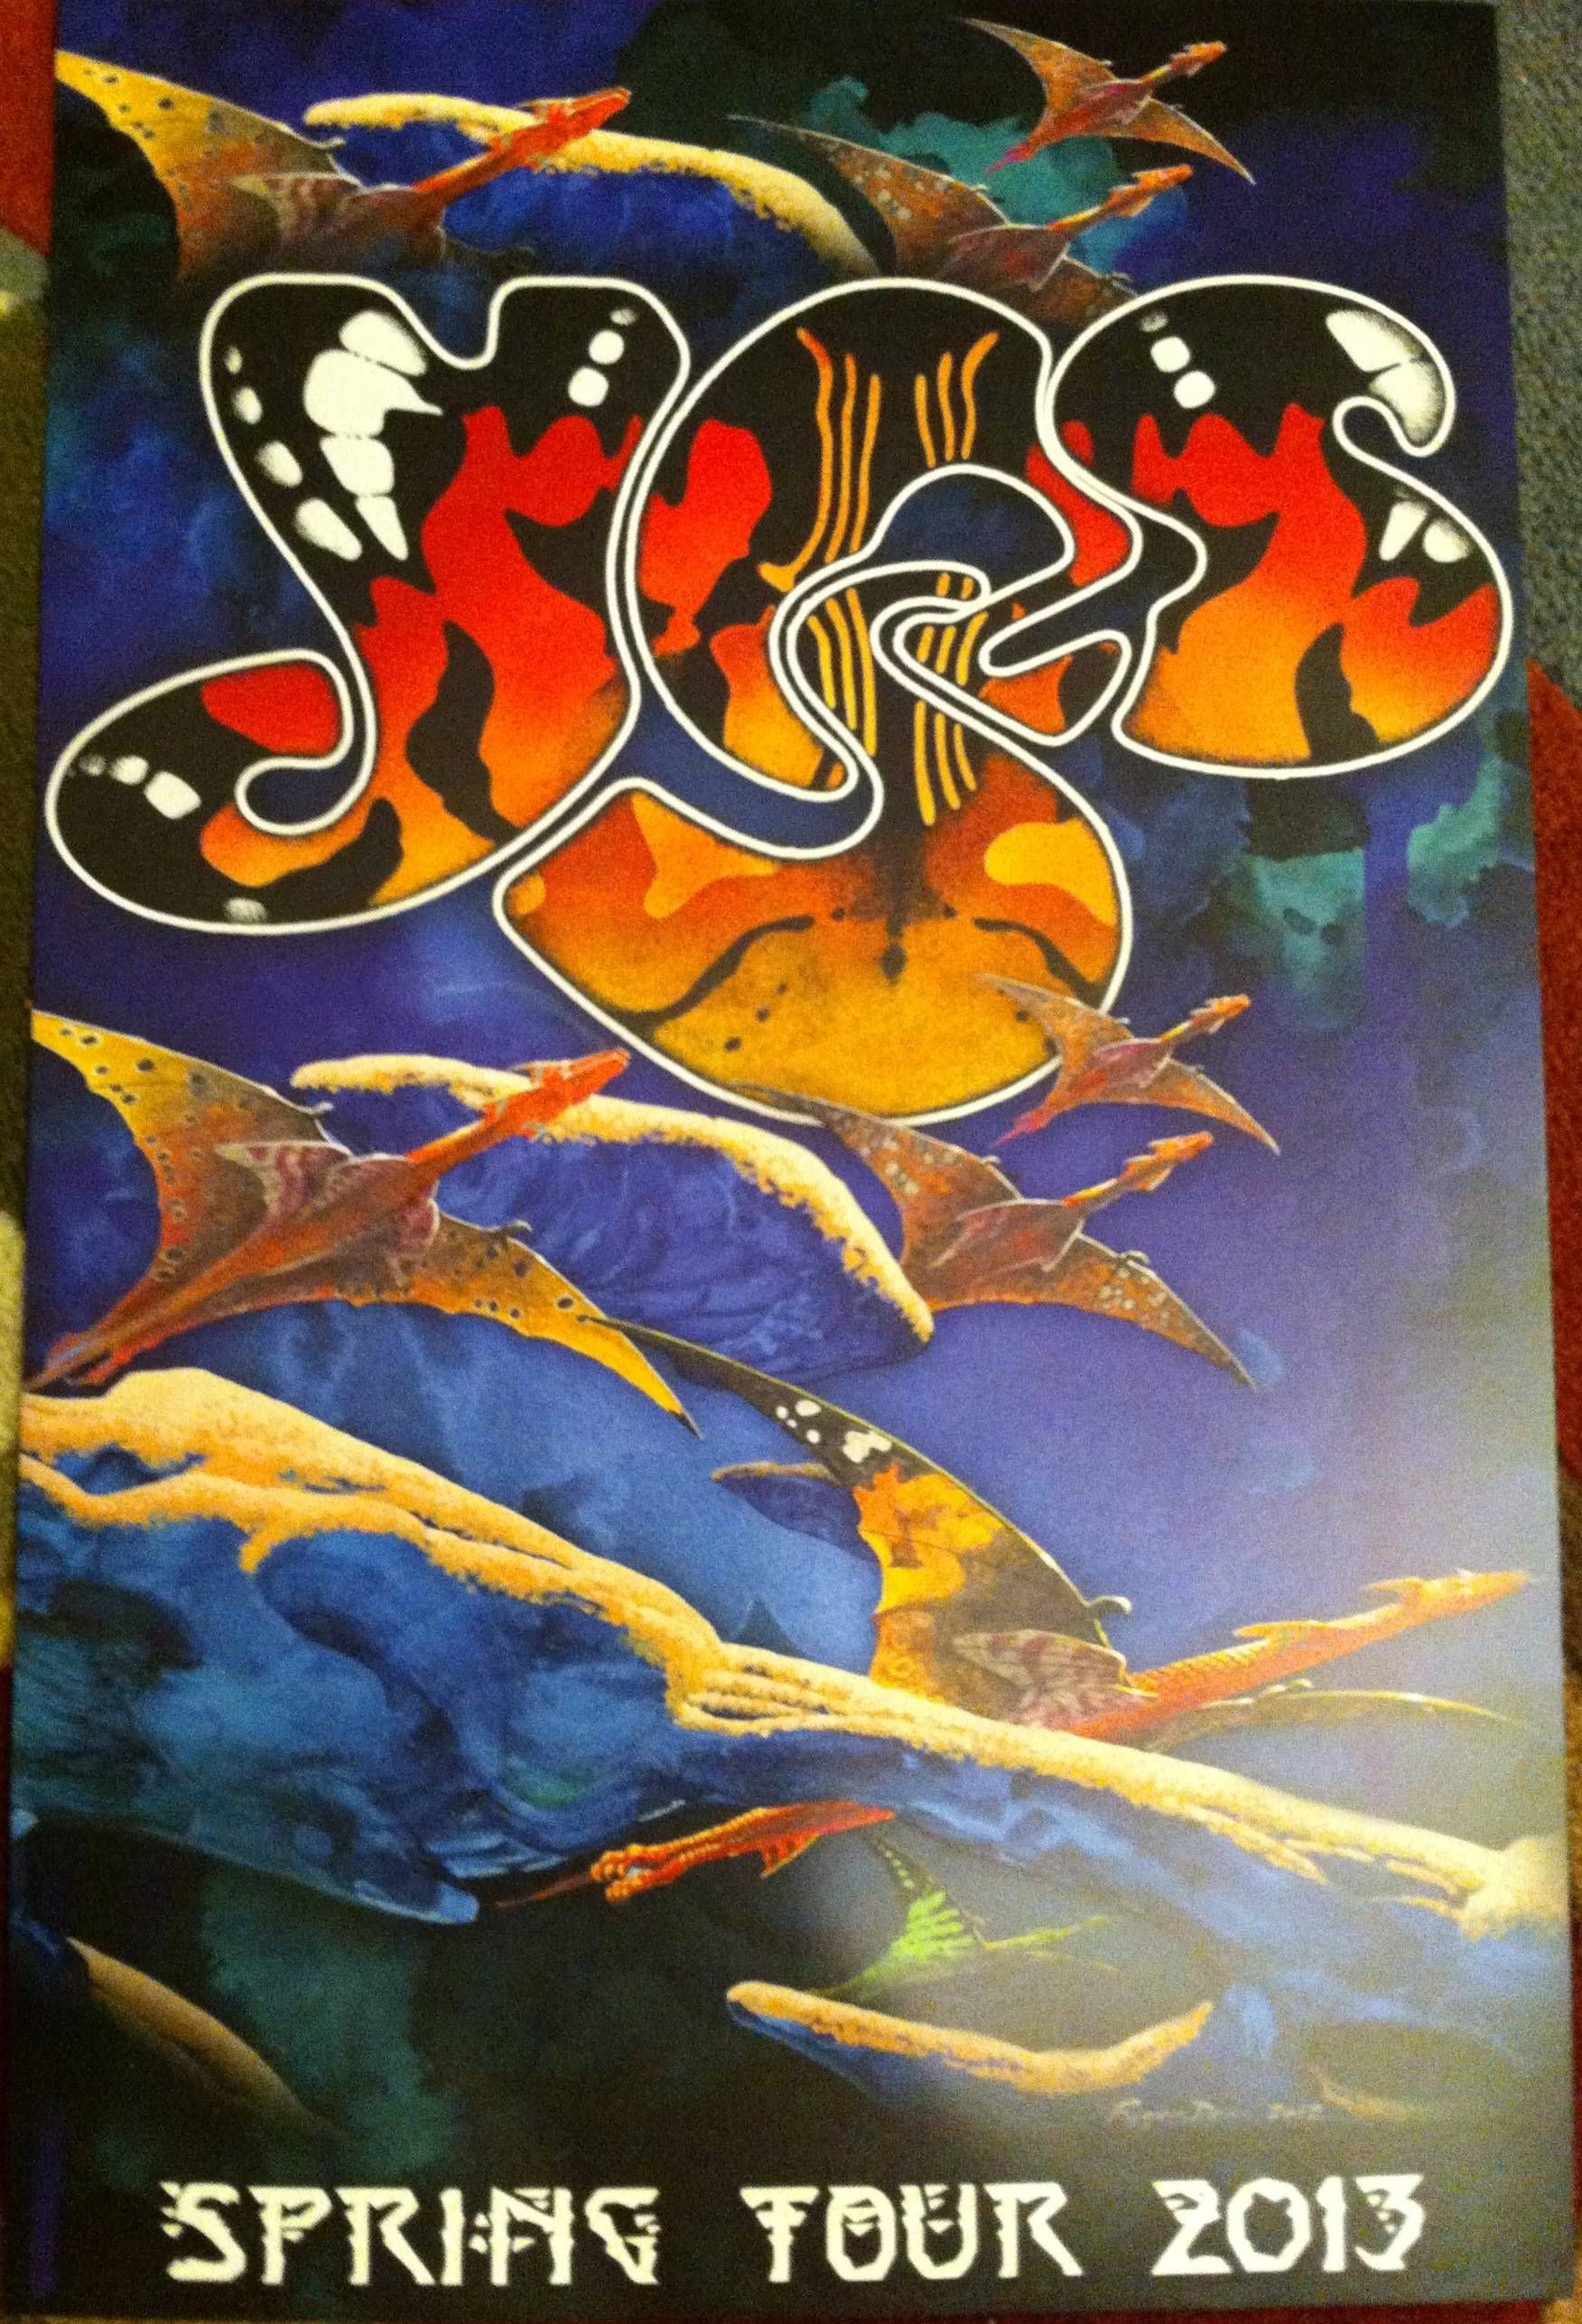 Yes Spring Tour 2013 Rock Poster Art Album Cover Art Vintage